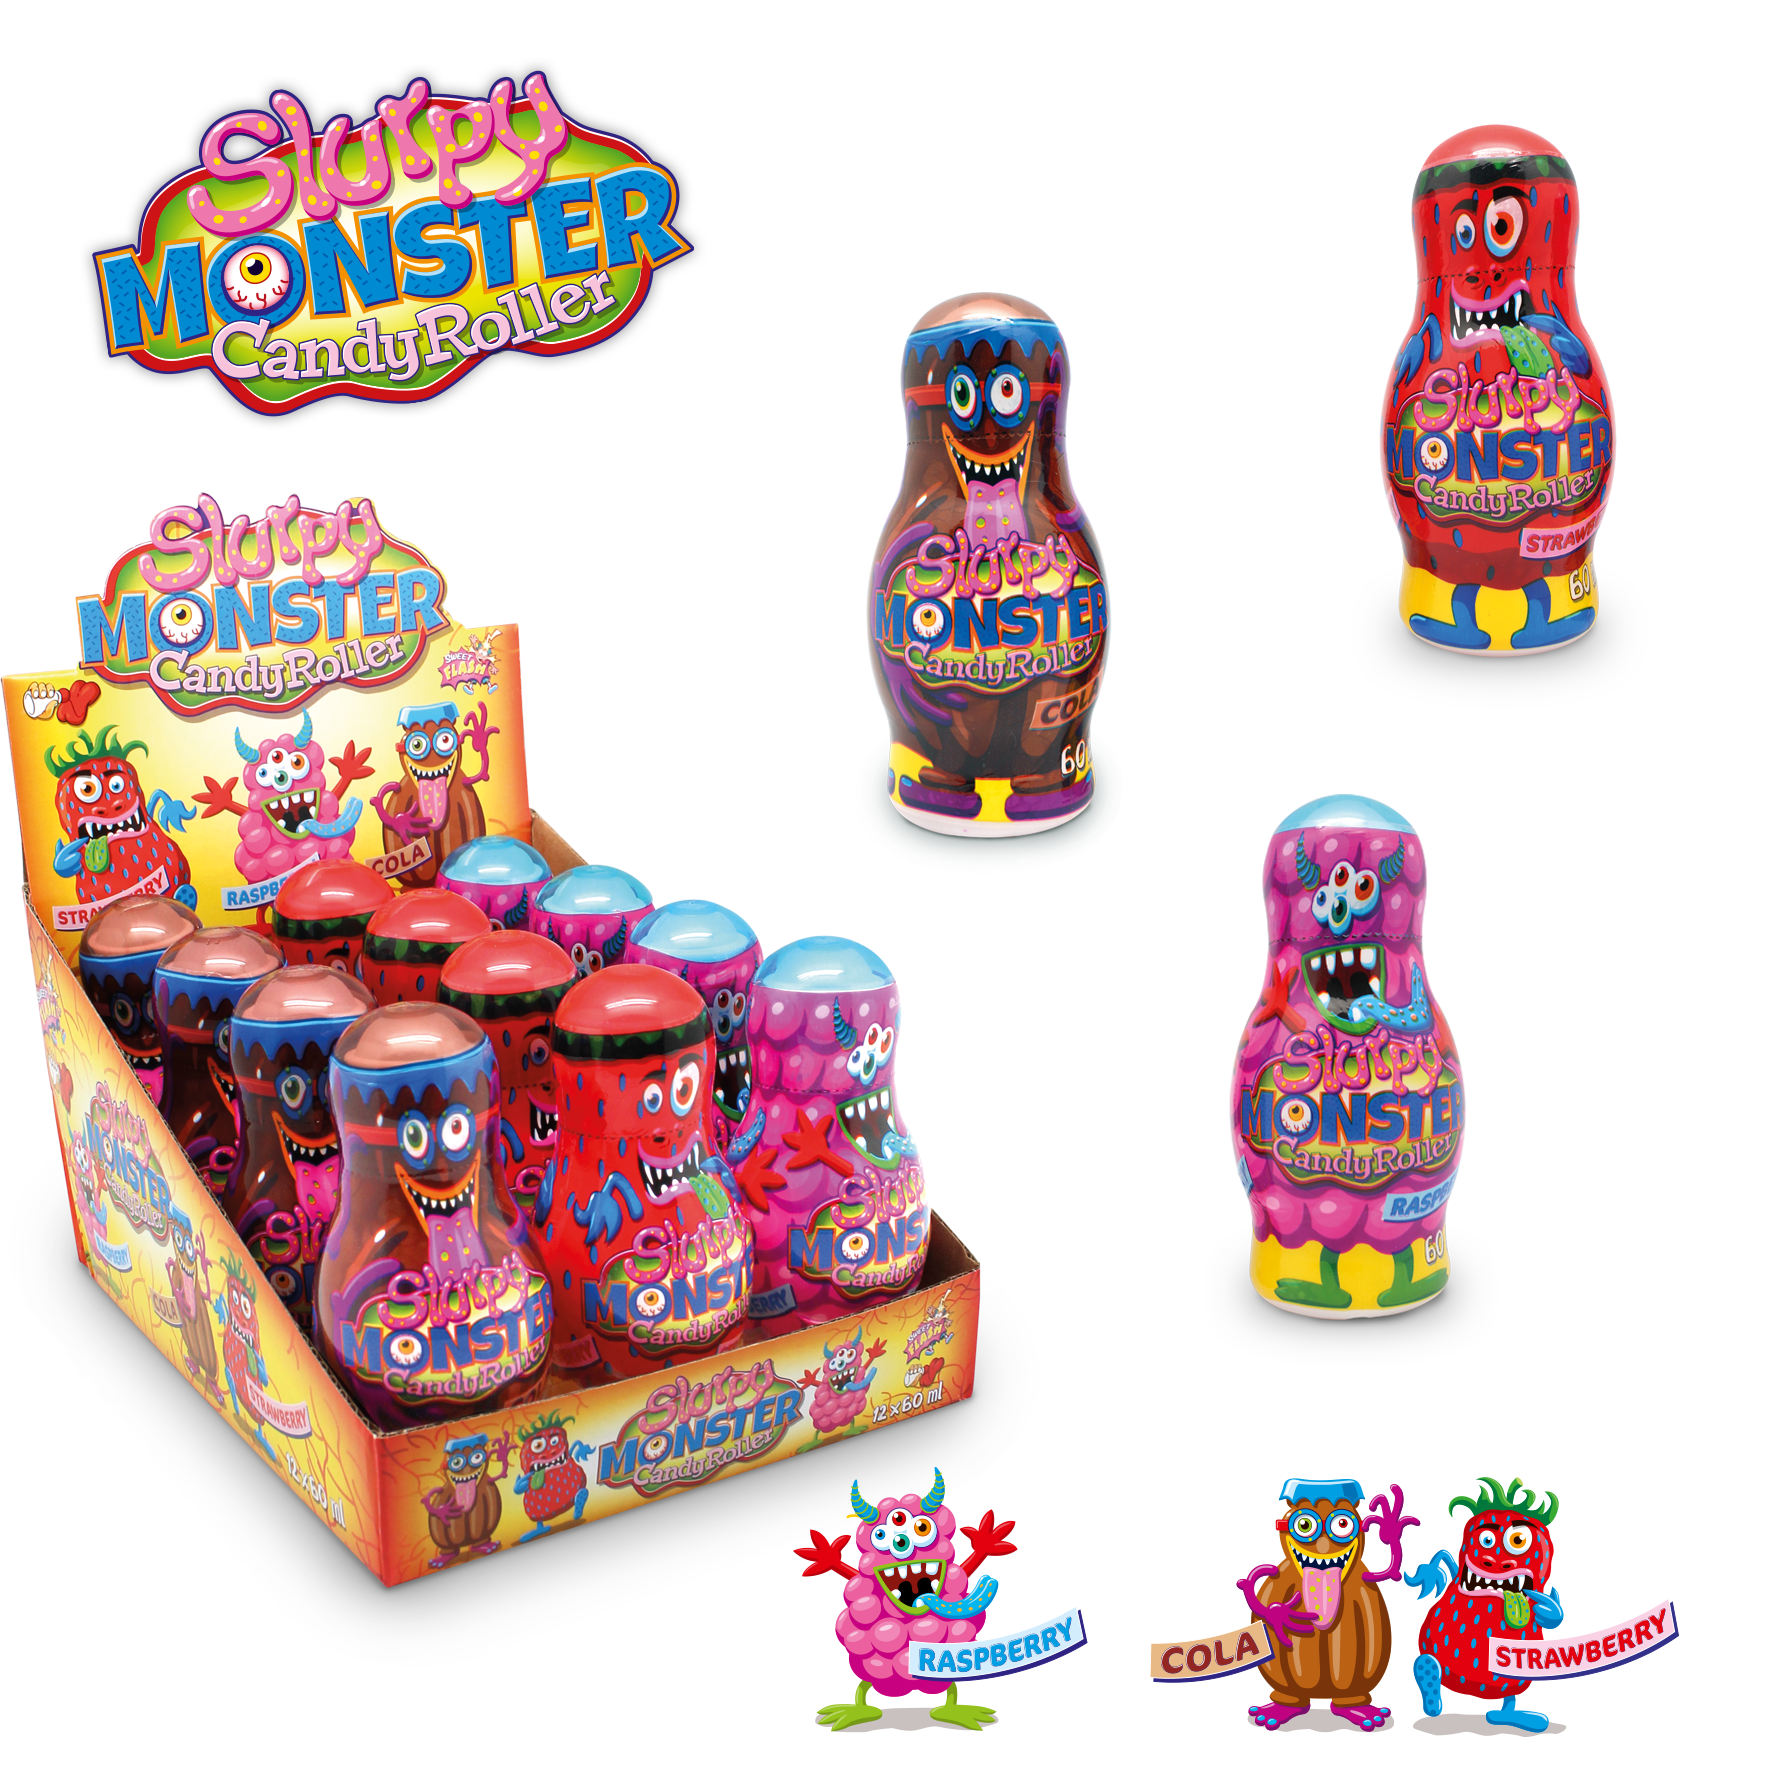 Slurpy Monster Candy Roller